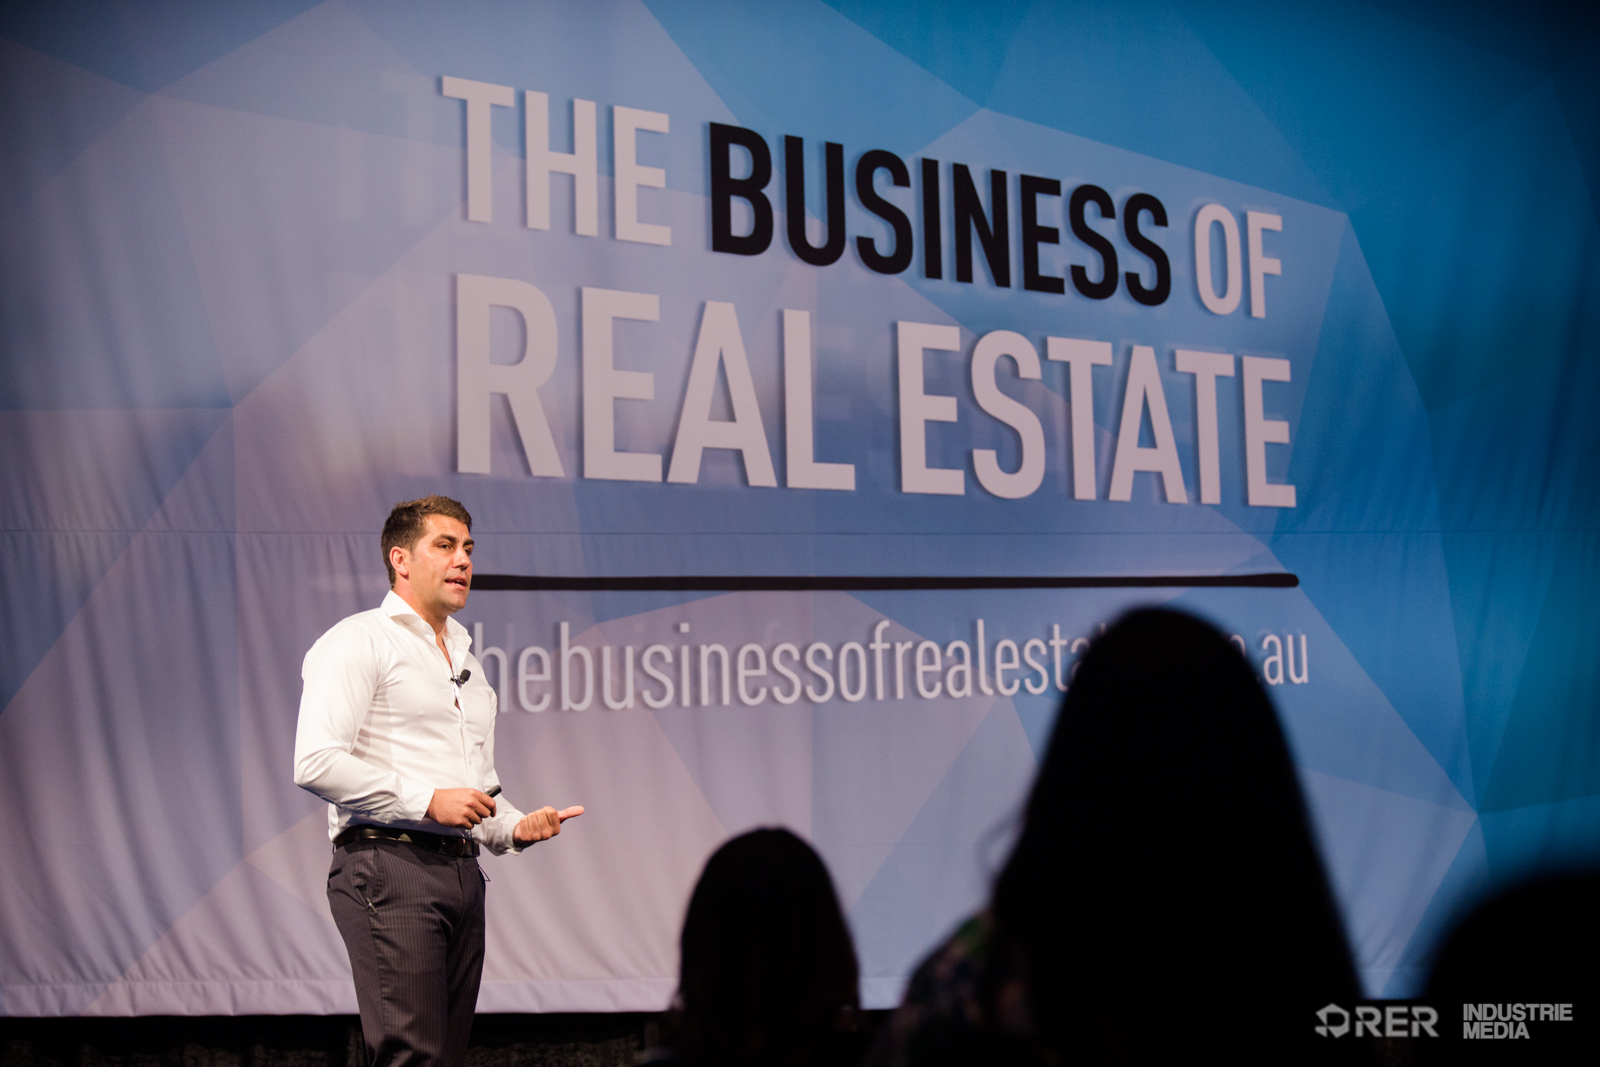 https://www.thebusinessofrealestate.com.au/wp-content/uploads/2016/09/RER_BUSINESS_OF_REAL_ESTATE-59.jpg